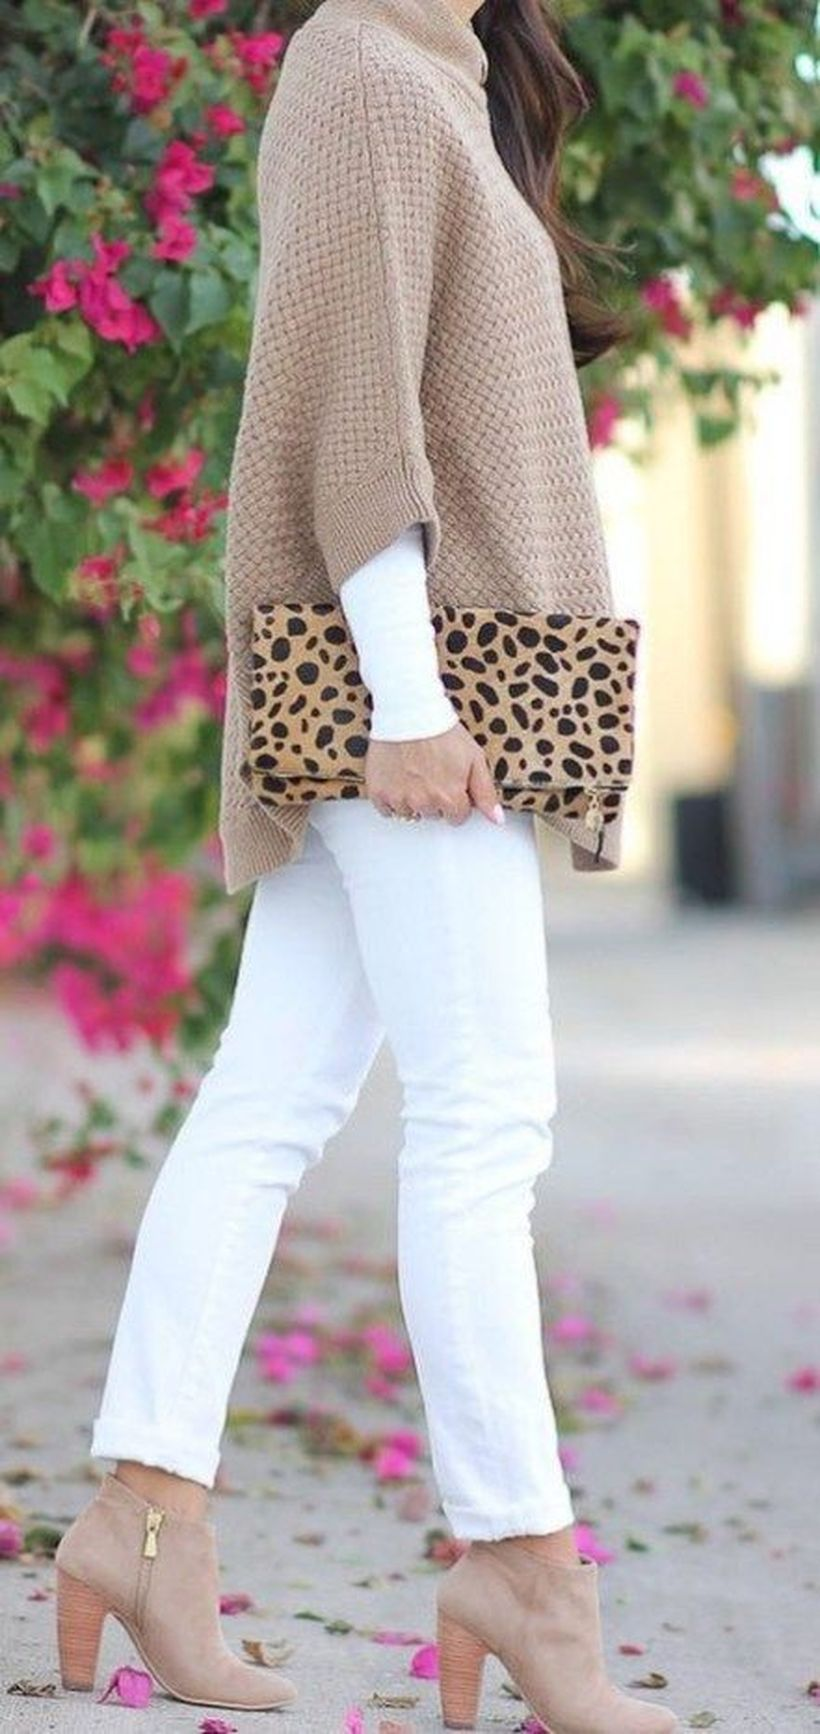 32 Amazing White Pants Ideas Trends in 2019 #falloutfits2019trends